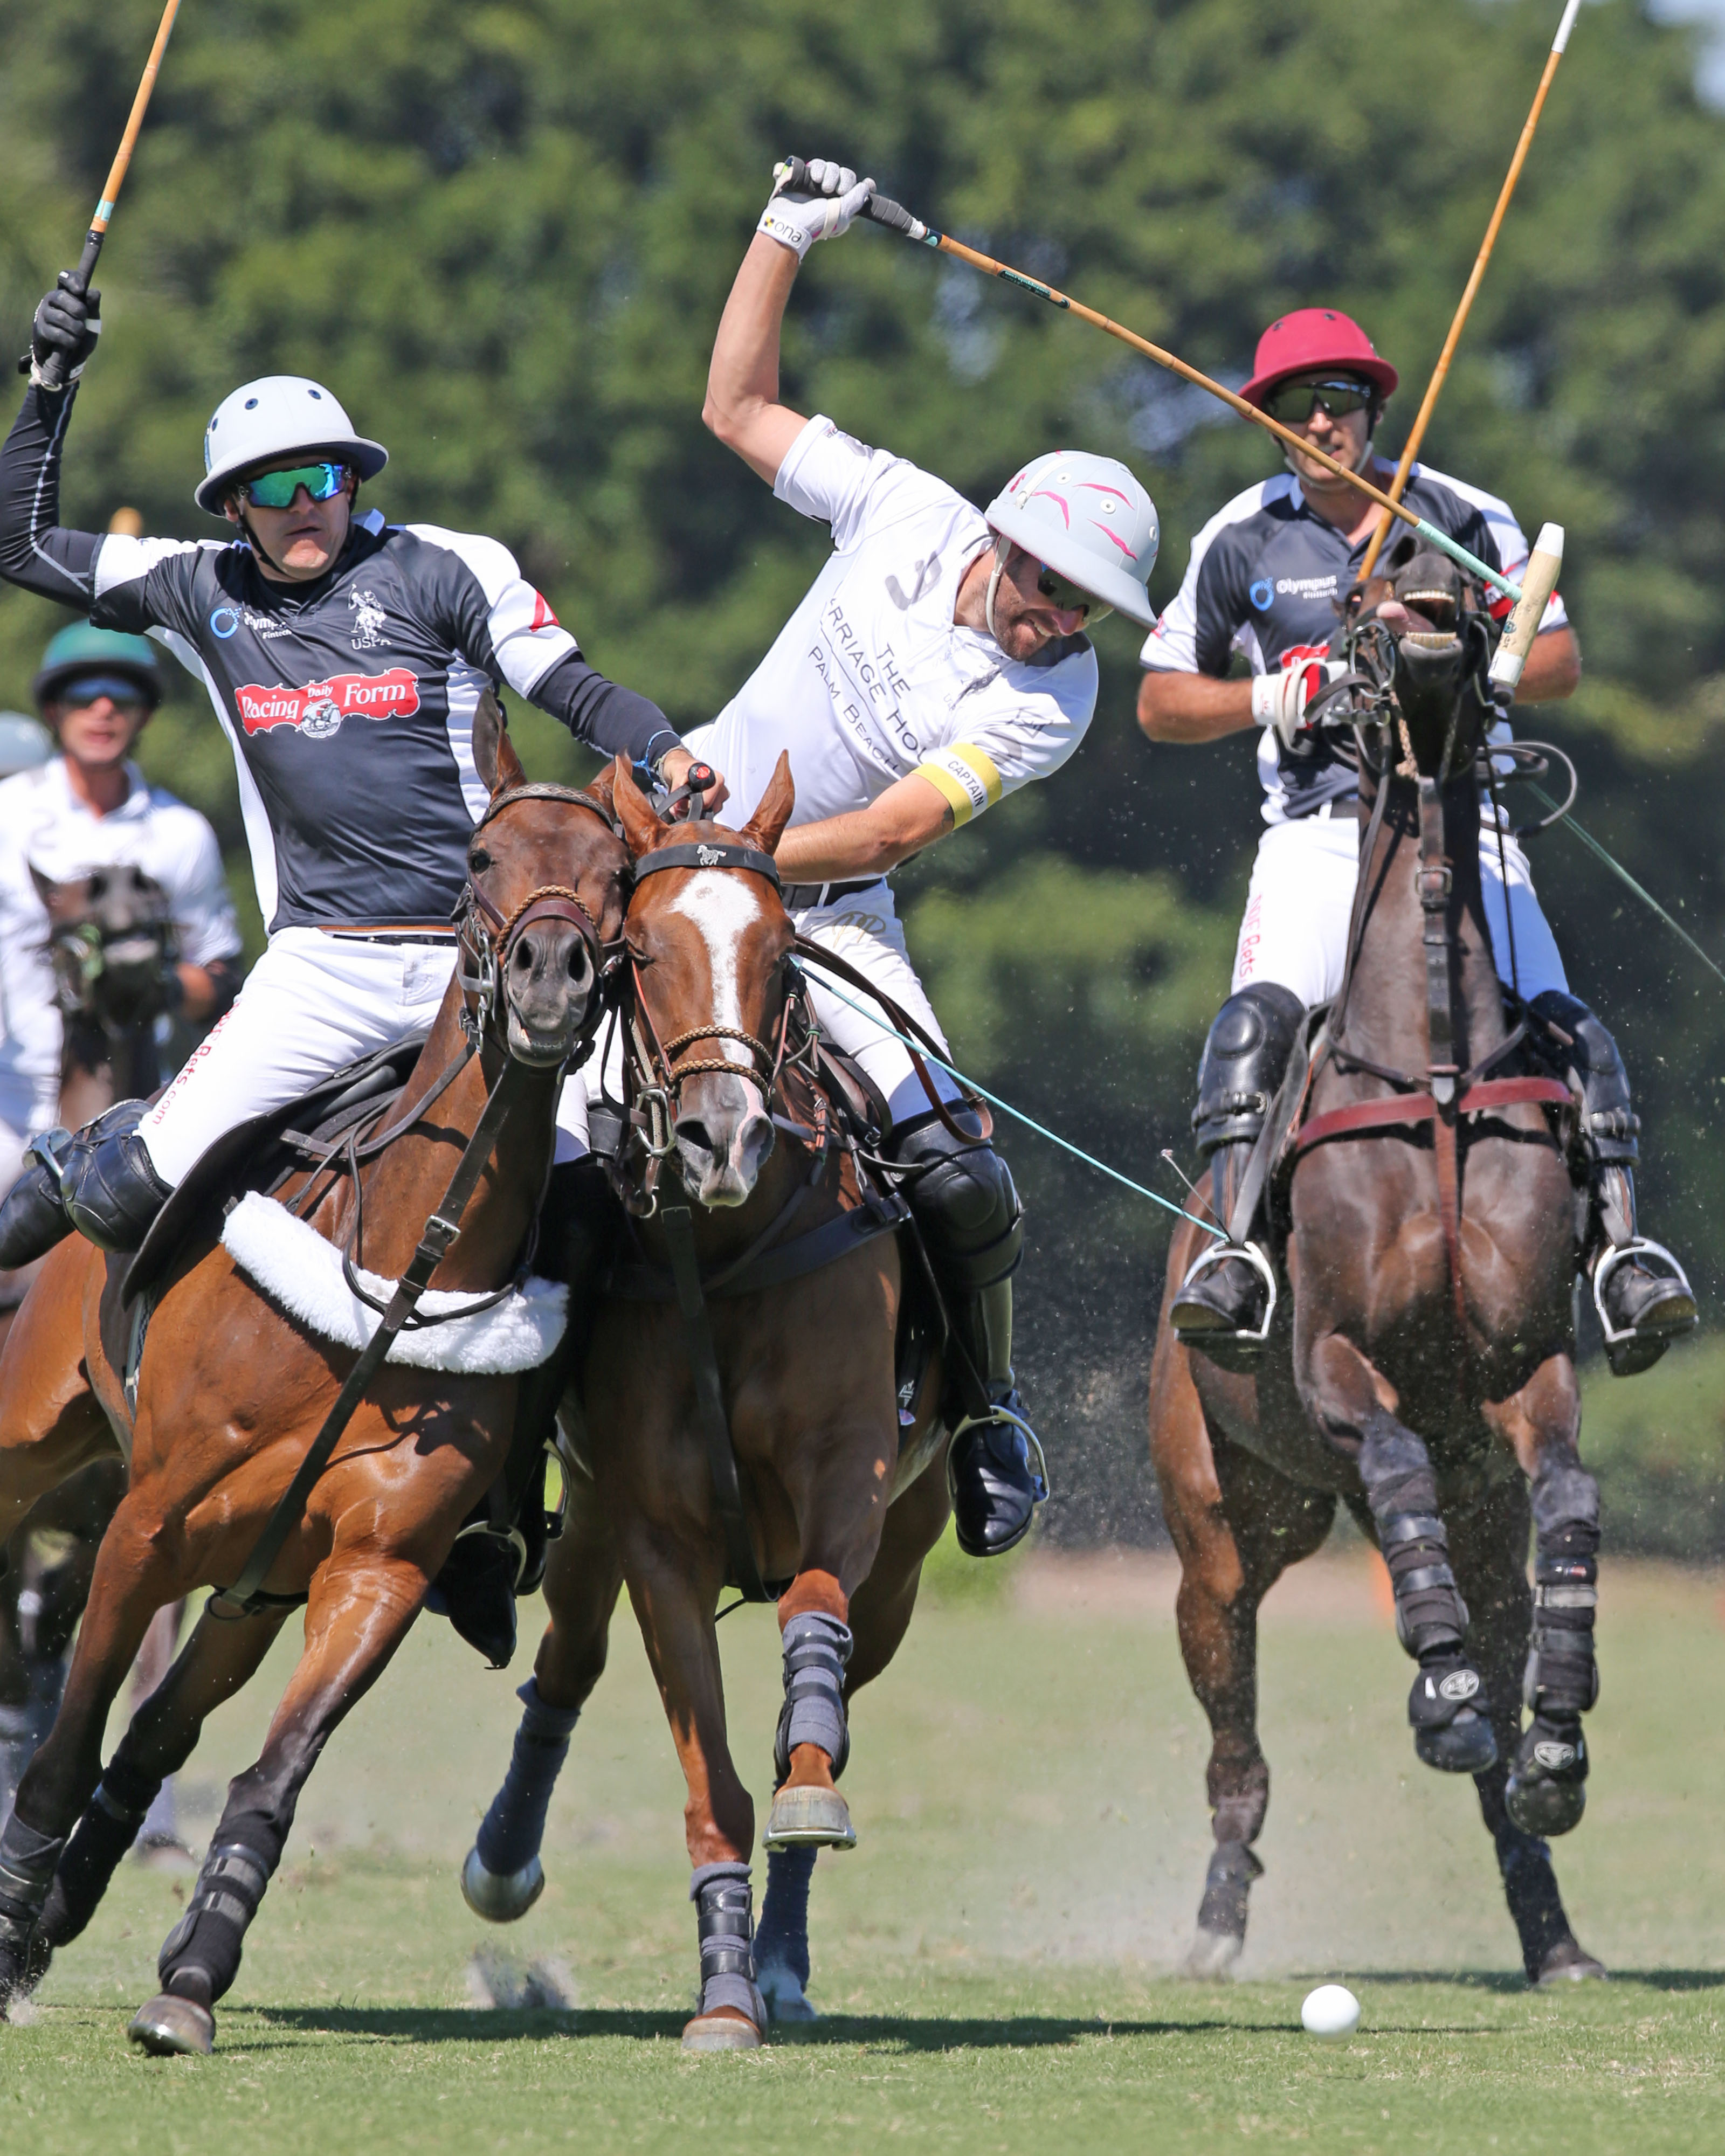 Daily Racing Form and La Indiana will return for the 2020 USPA Gold Cup® continuation. ©Alex Pacheco